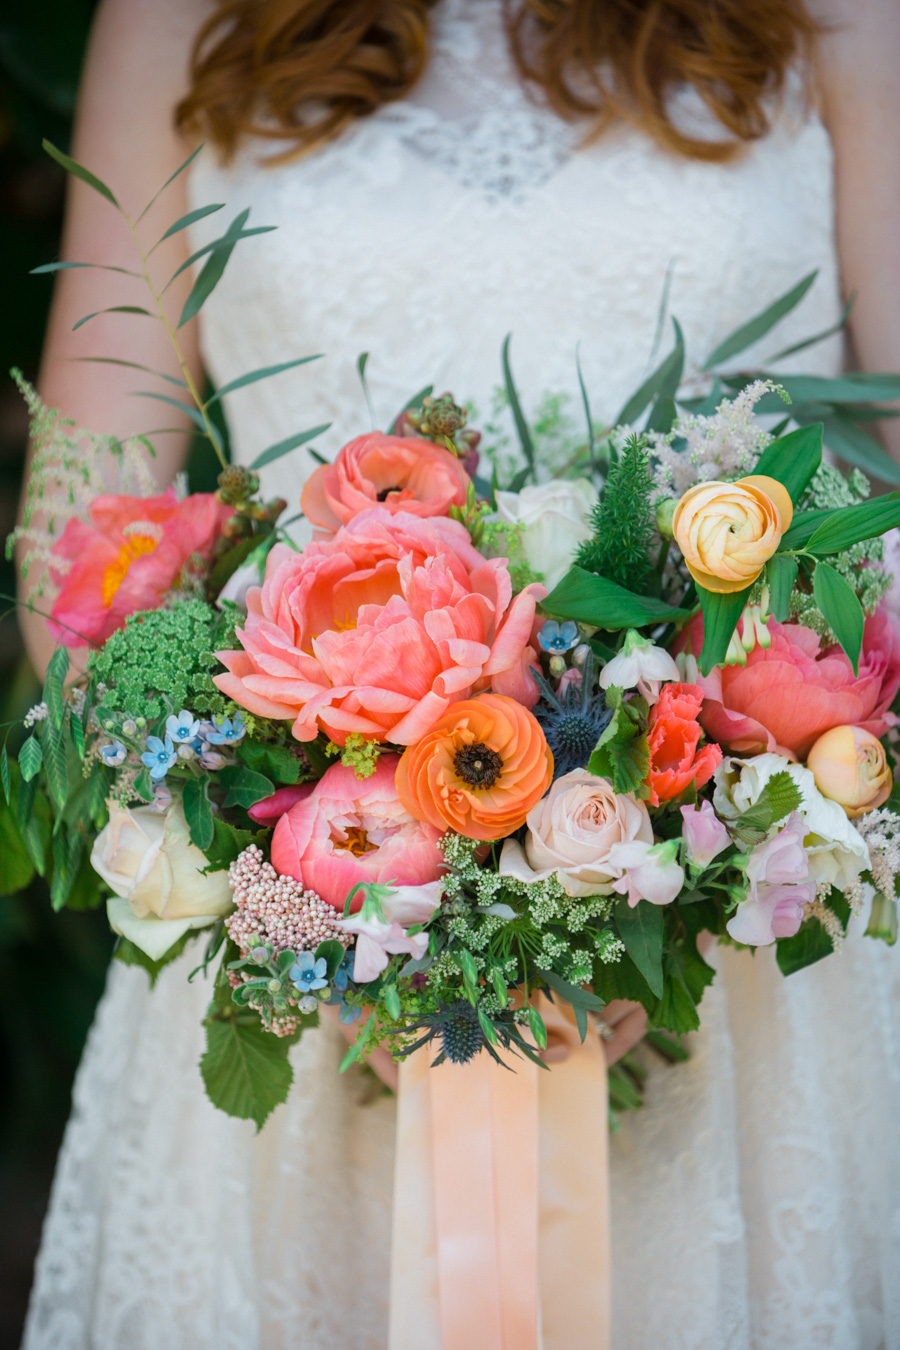 Divine wedding styling with English country garden florals at Pauntley Court, photo credit Red Maple Photography (32)